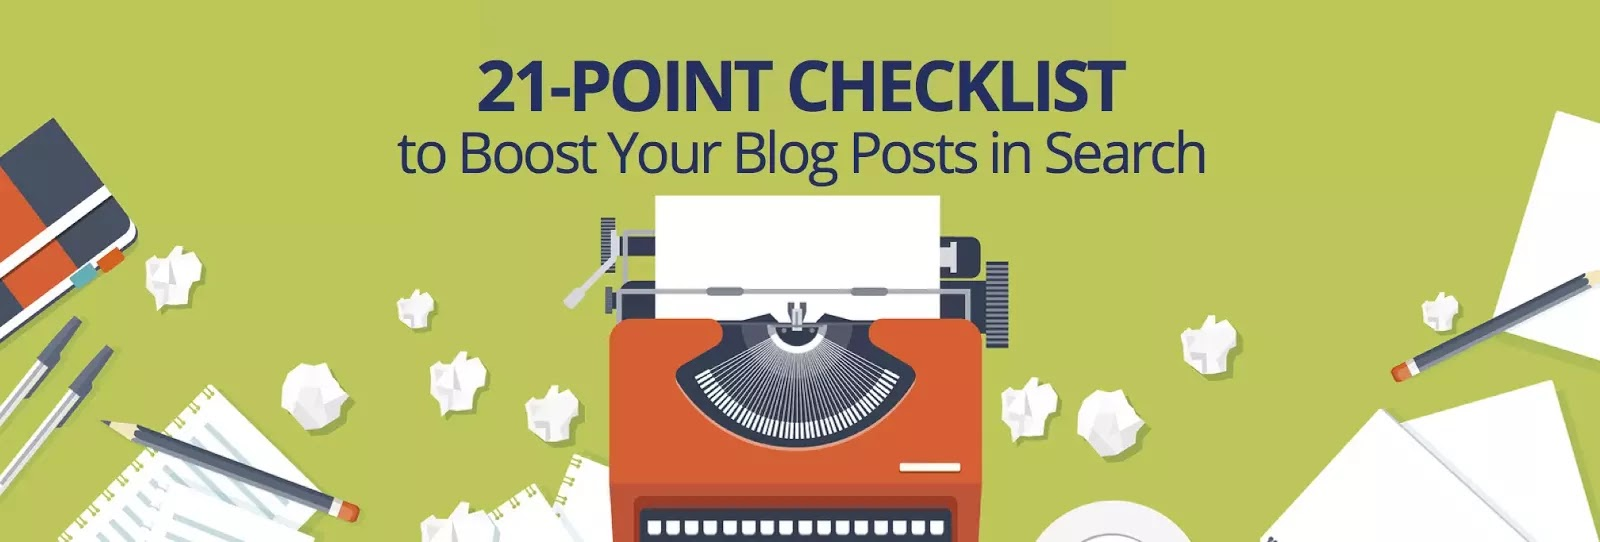 21 Point Checklist To Boost Your Blog Posts On The Search Engine [Infographic]